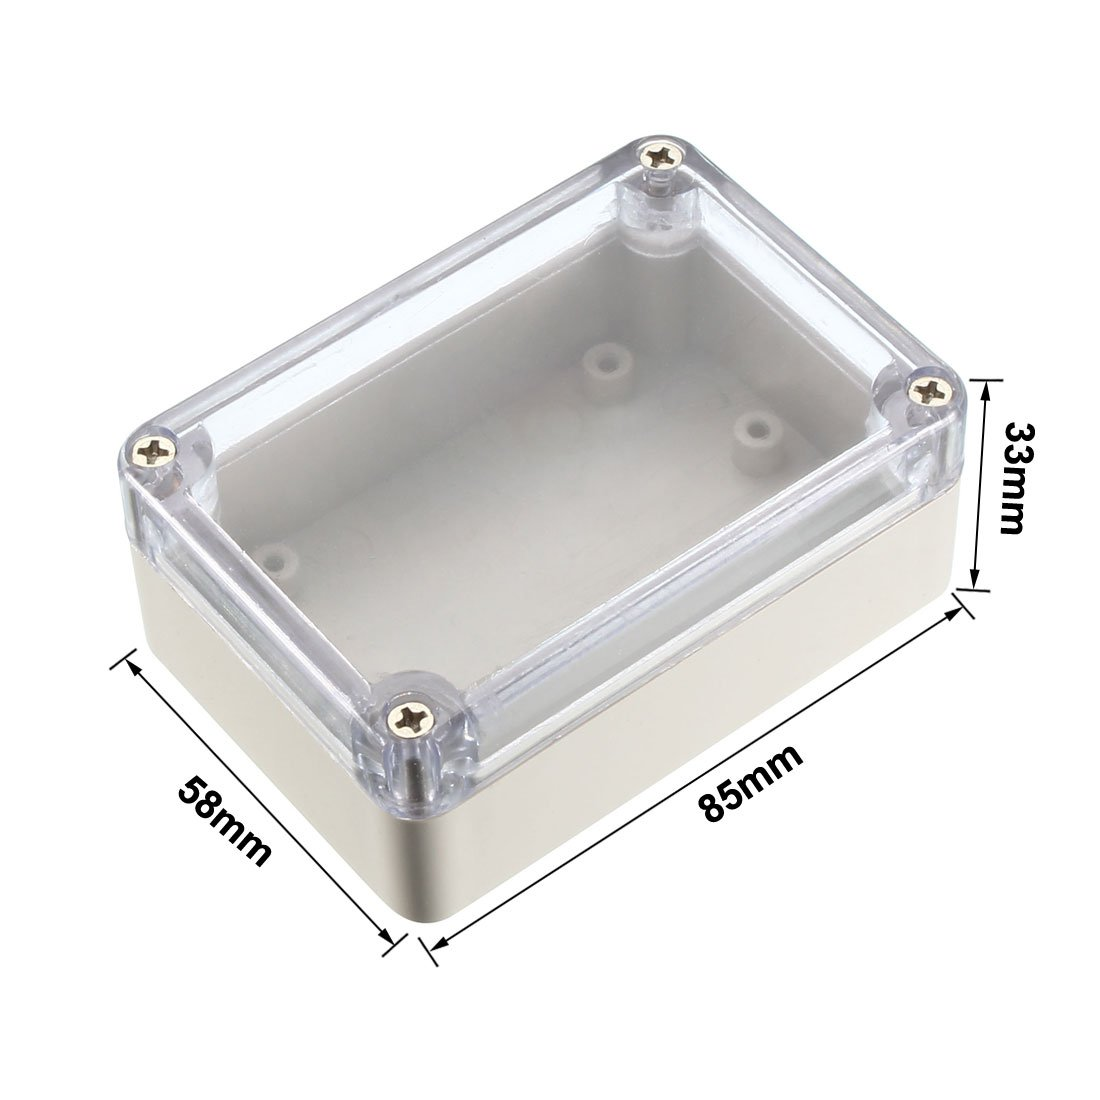 uxcell 85x58x33mm Electronic Waterproof IP65 Sealed ABS Plastic DIY Junction Box Enclosure Case Clear a18051700ux0365